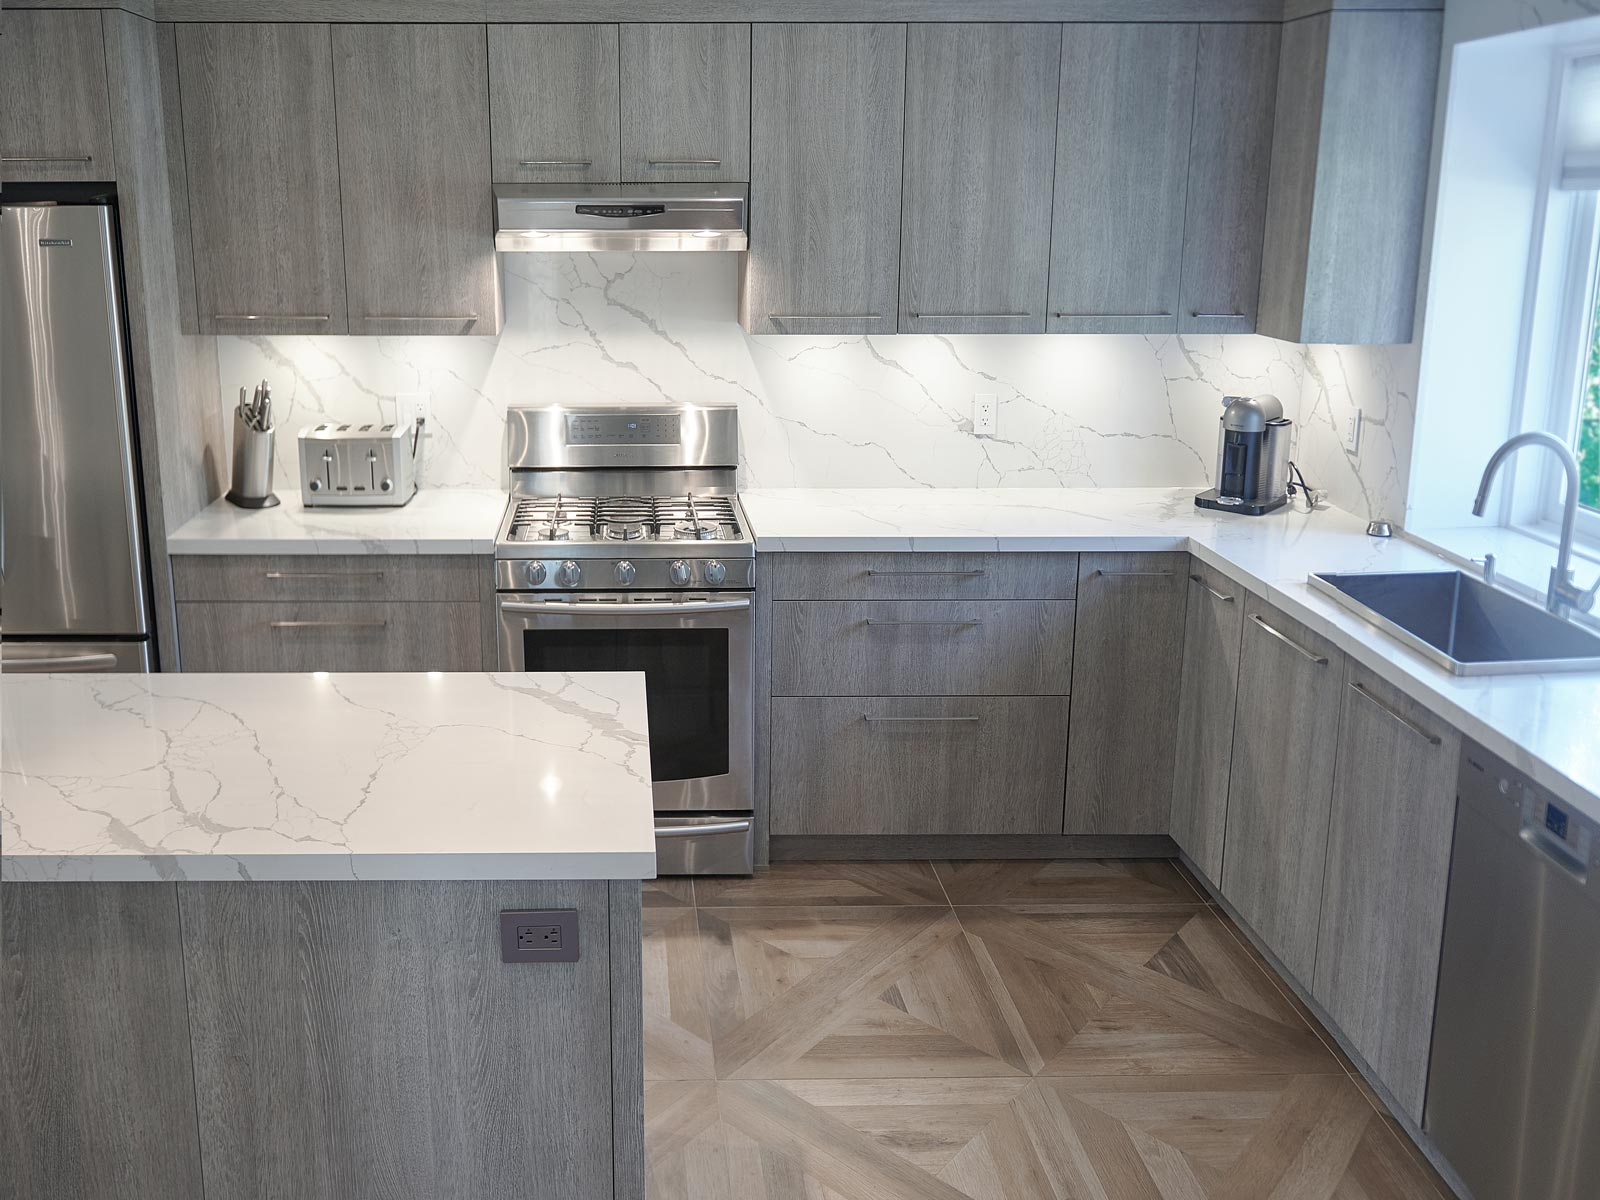 Toronto kitchen with cabinetry in weathered wood style and Samsung appliances